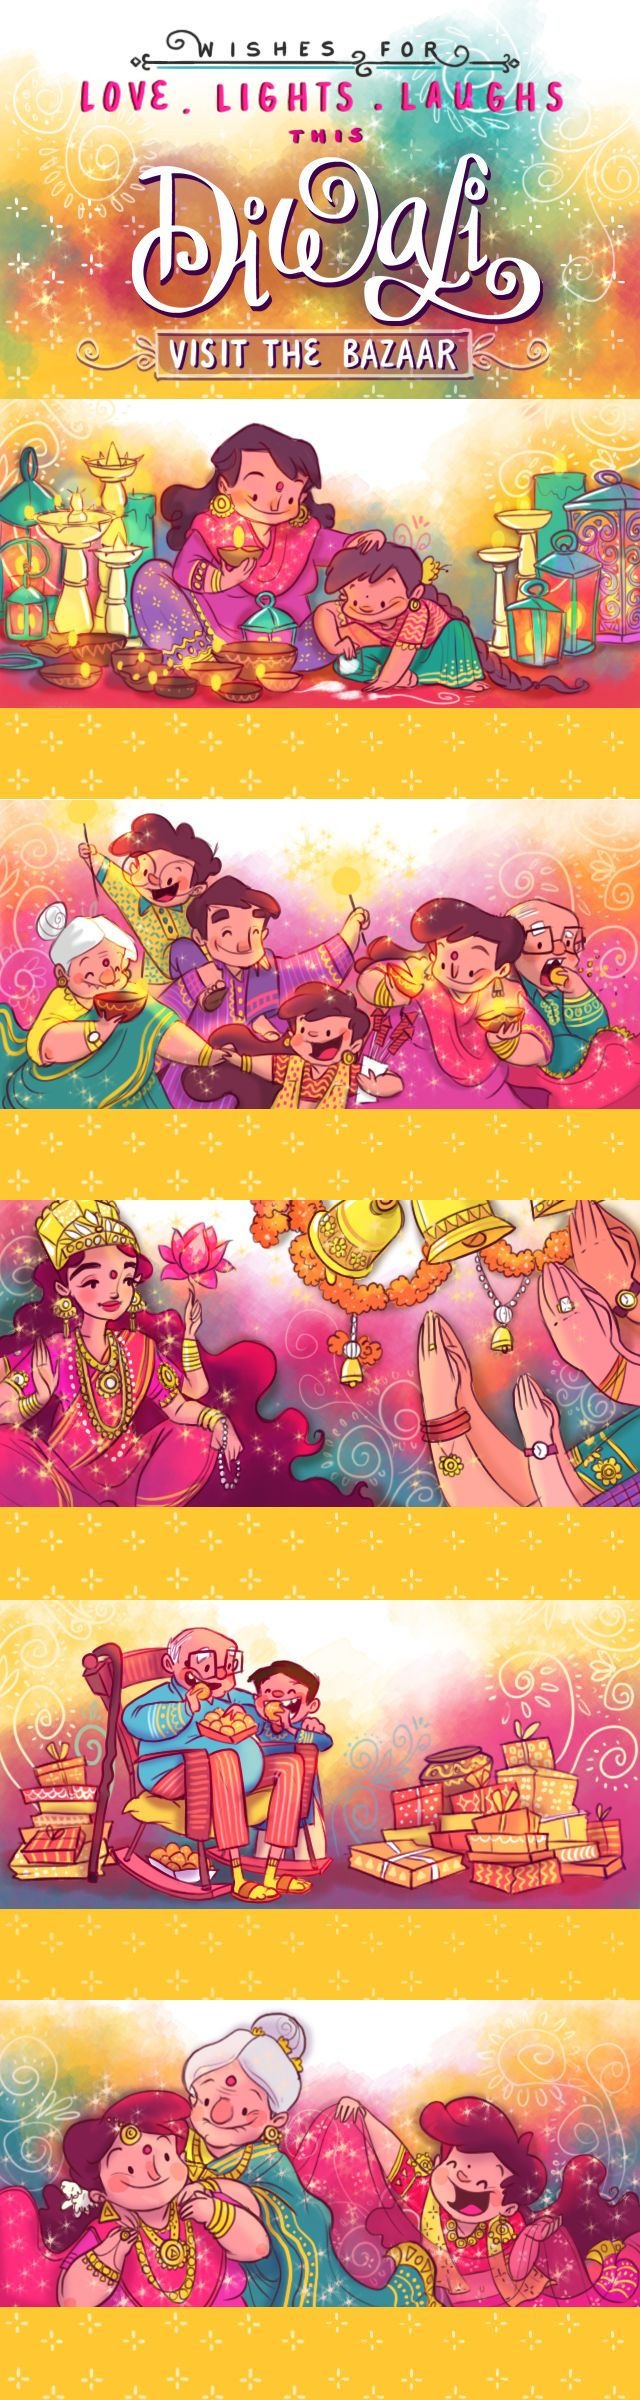 Amazon India - Diwali Emailer! on Behance